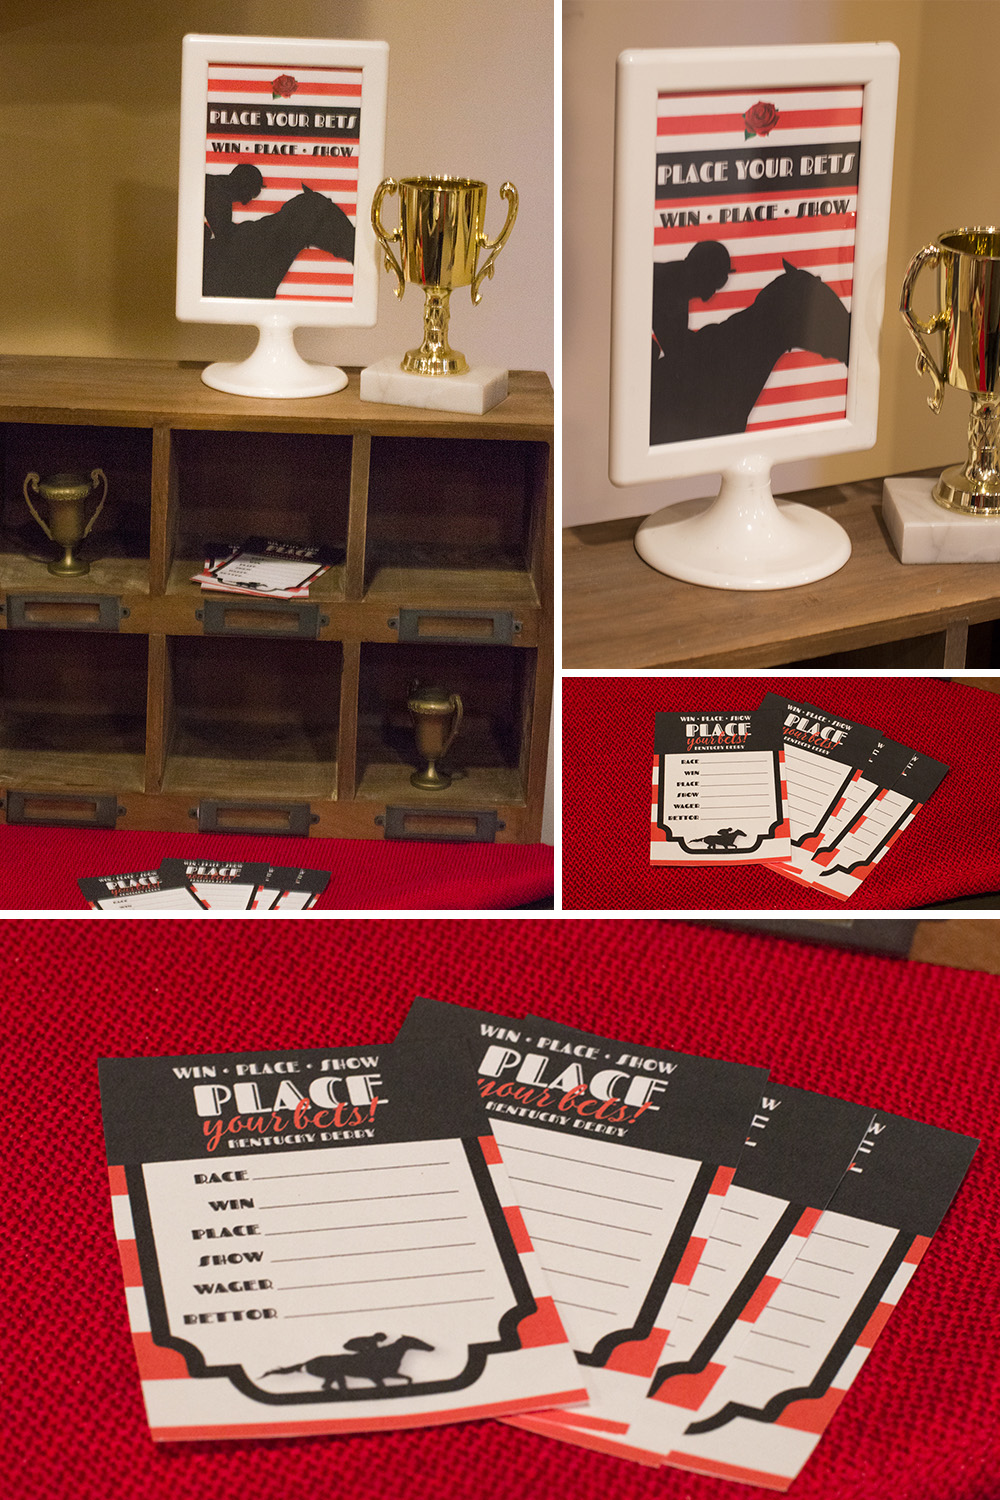 Make sure you guests take bets on who will win the Kentucky Derby!